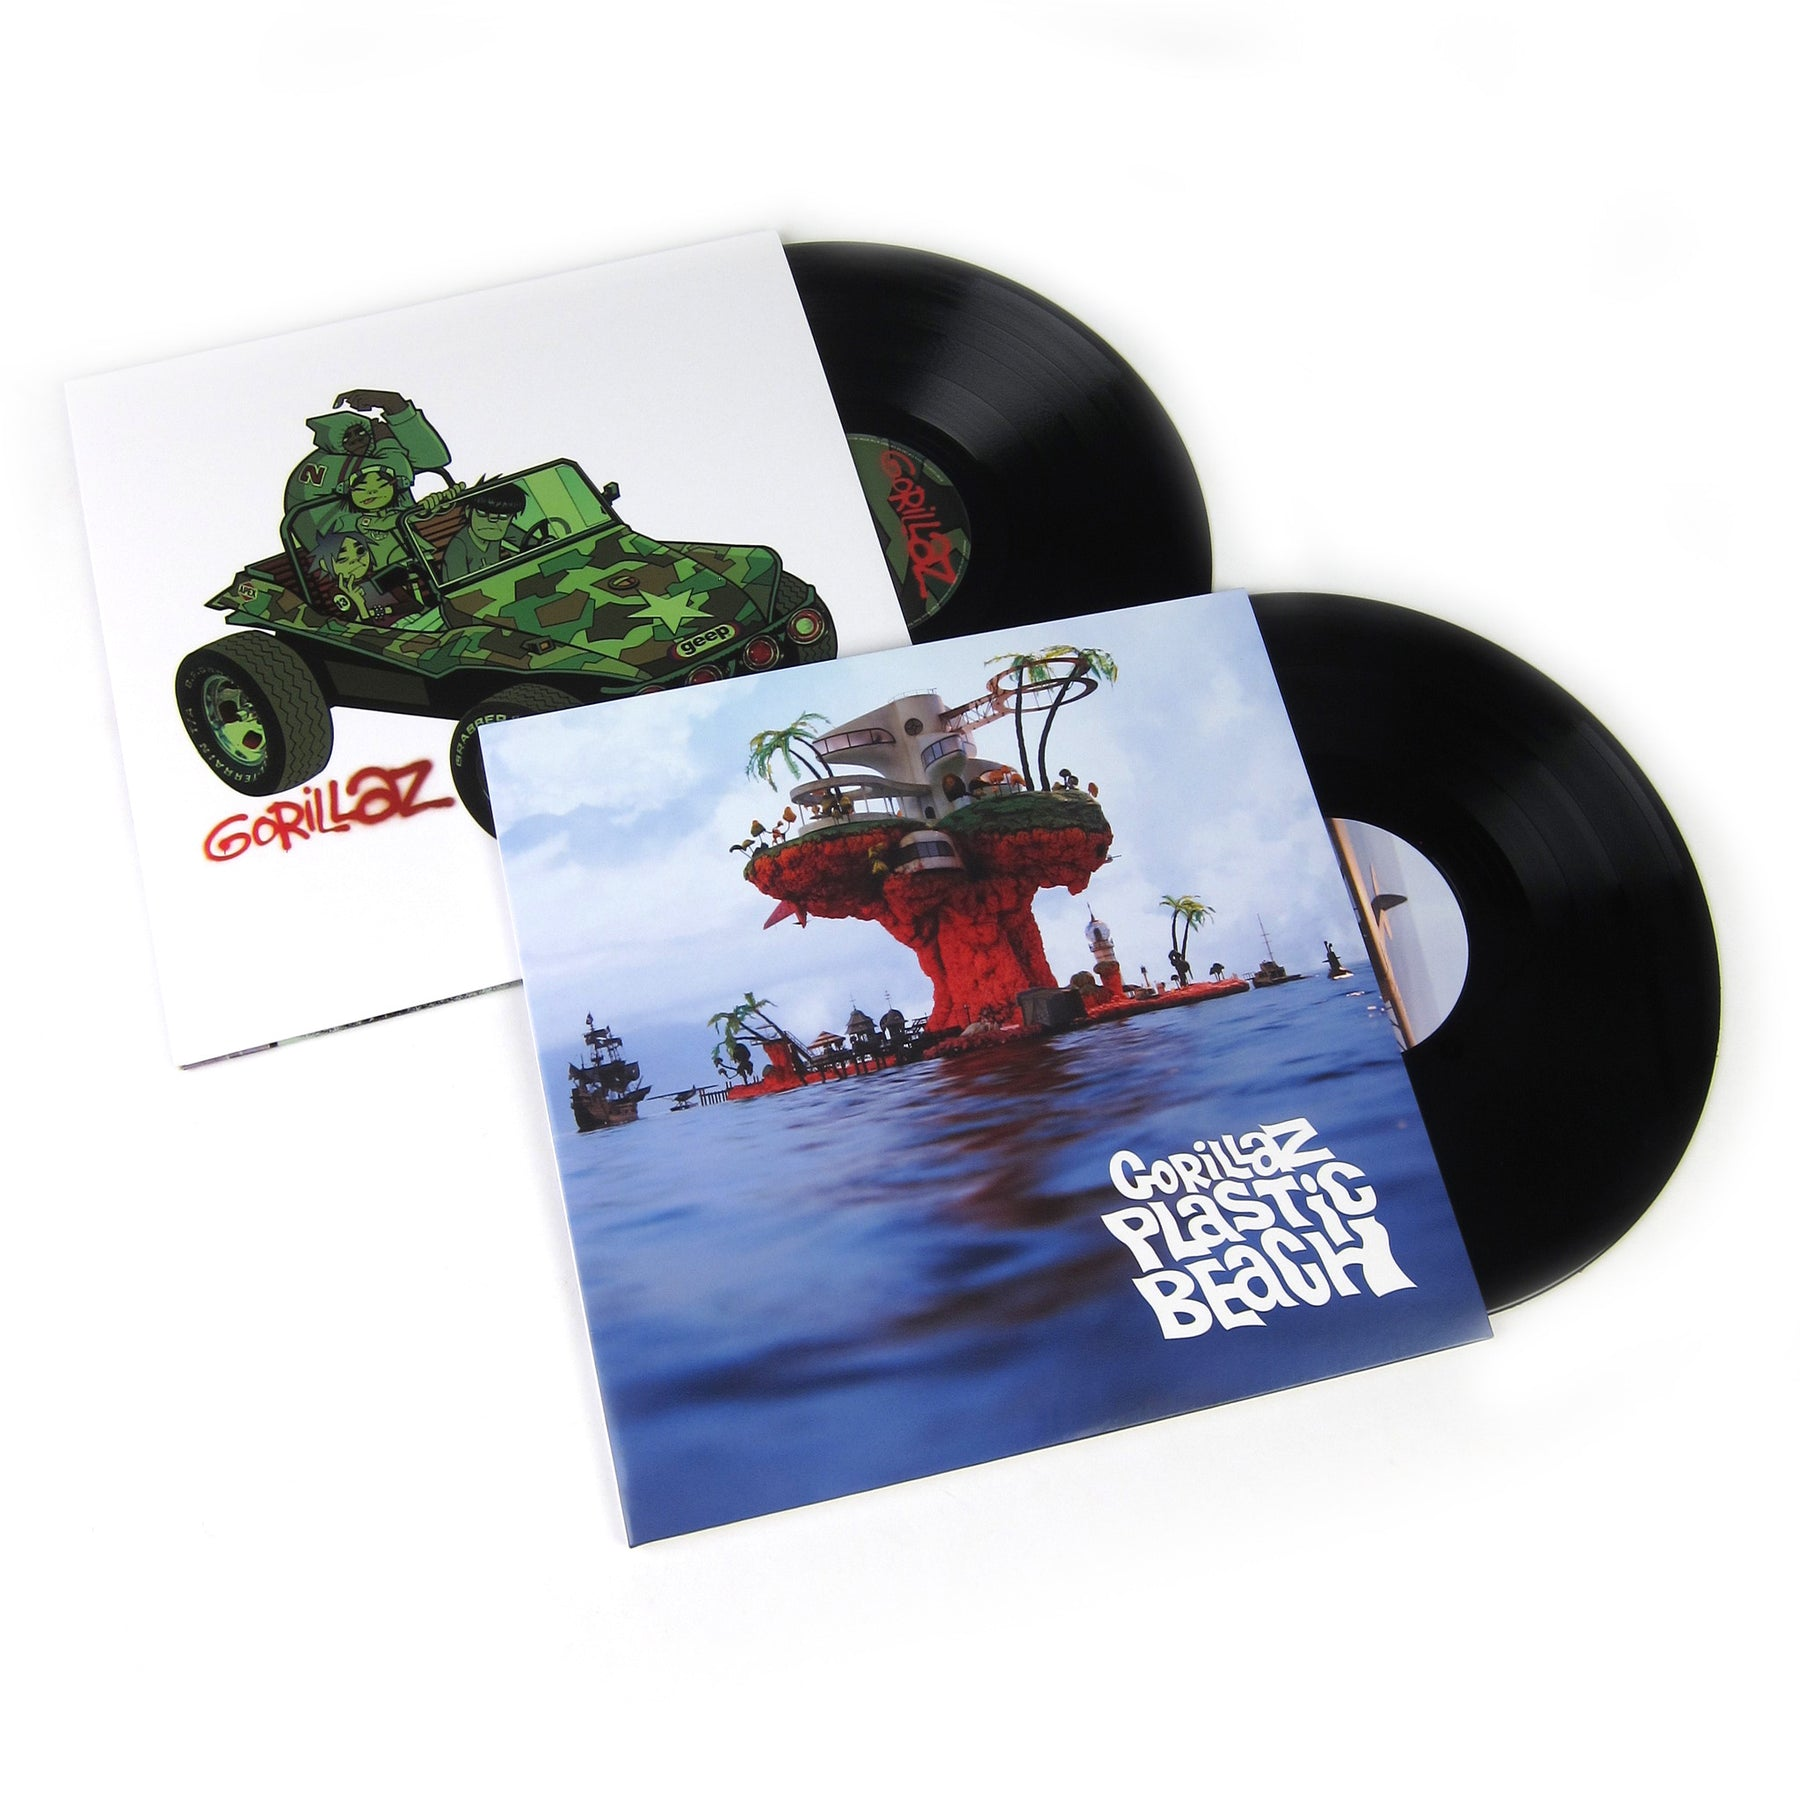 gorillaz vinyl lp album pack gorillaz plastic beach. Black Bedroom Furniture Sets. Home Design Ideas